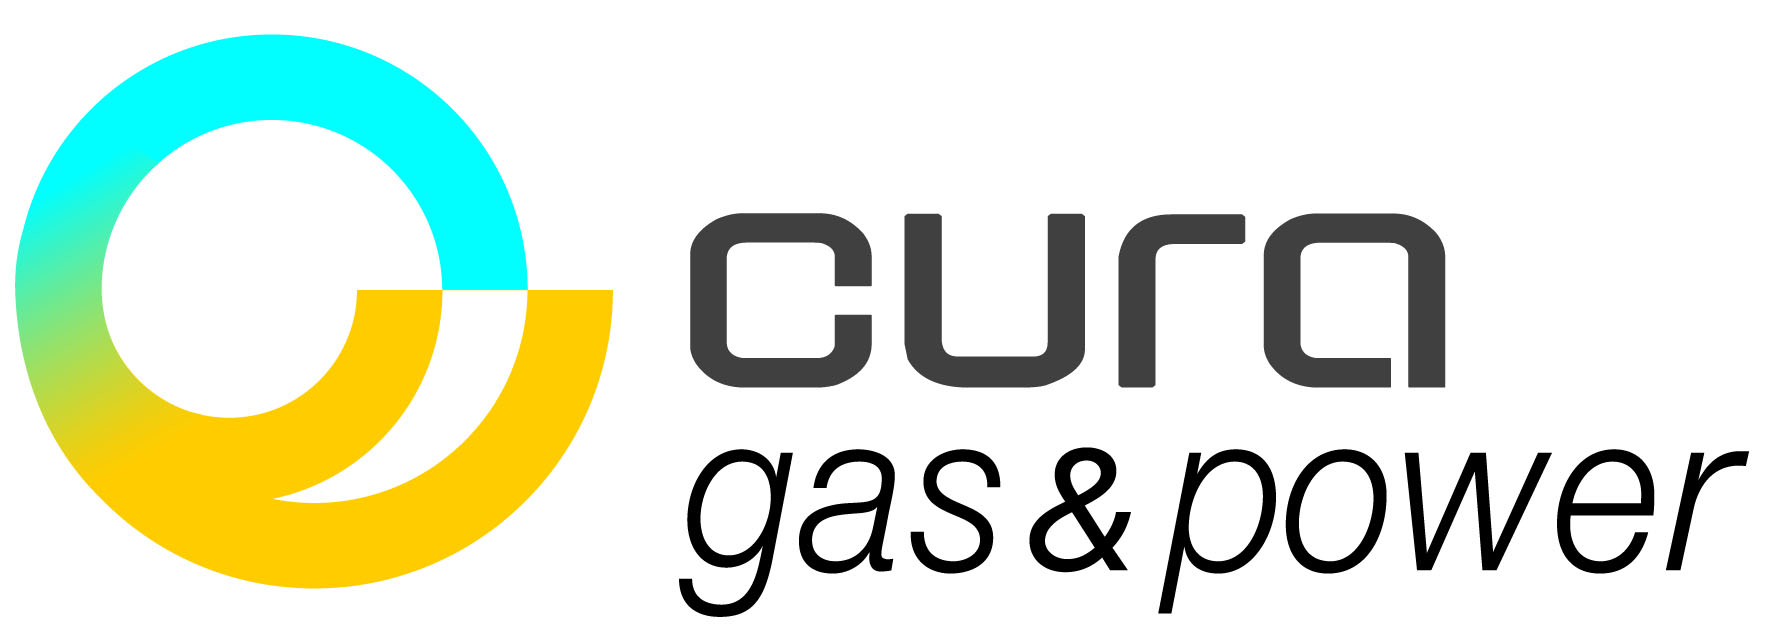 Cura Gas and Power S.p.A.